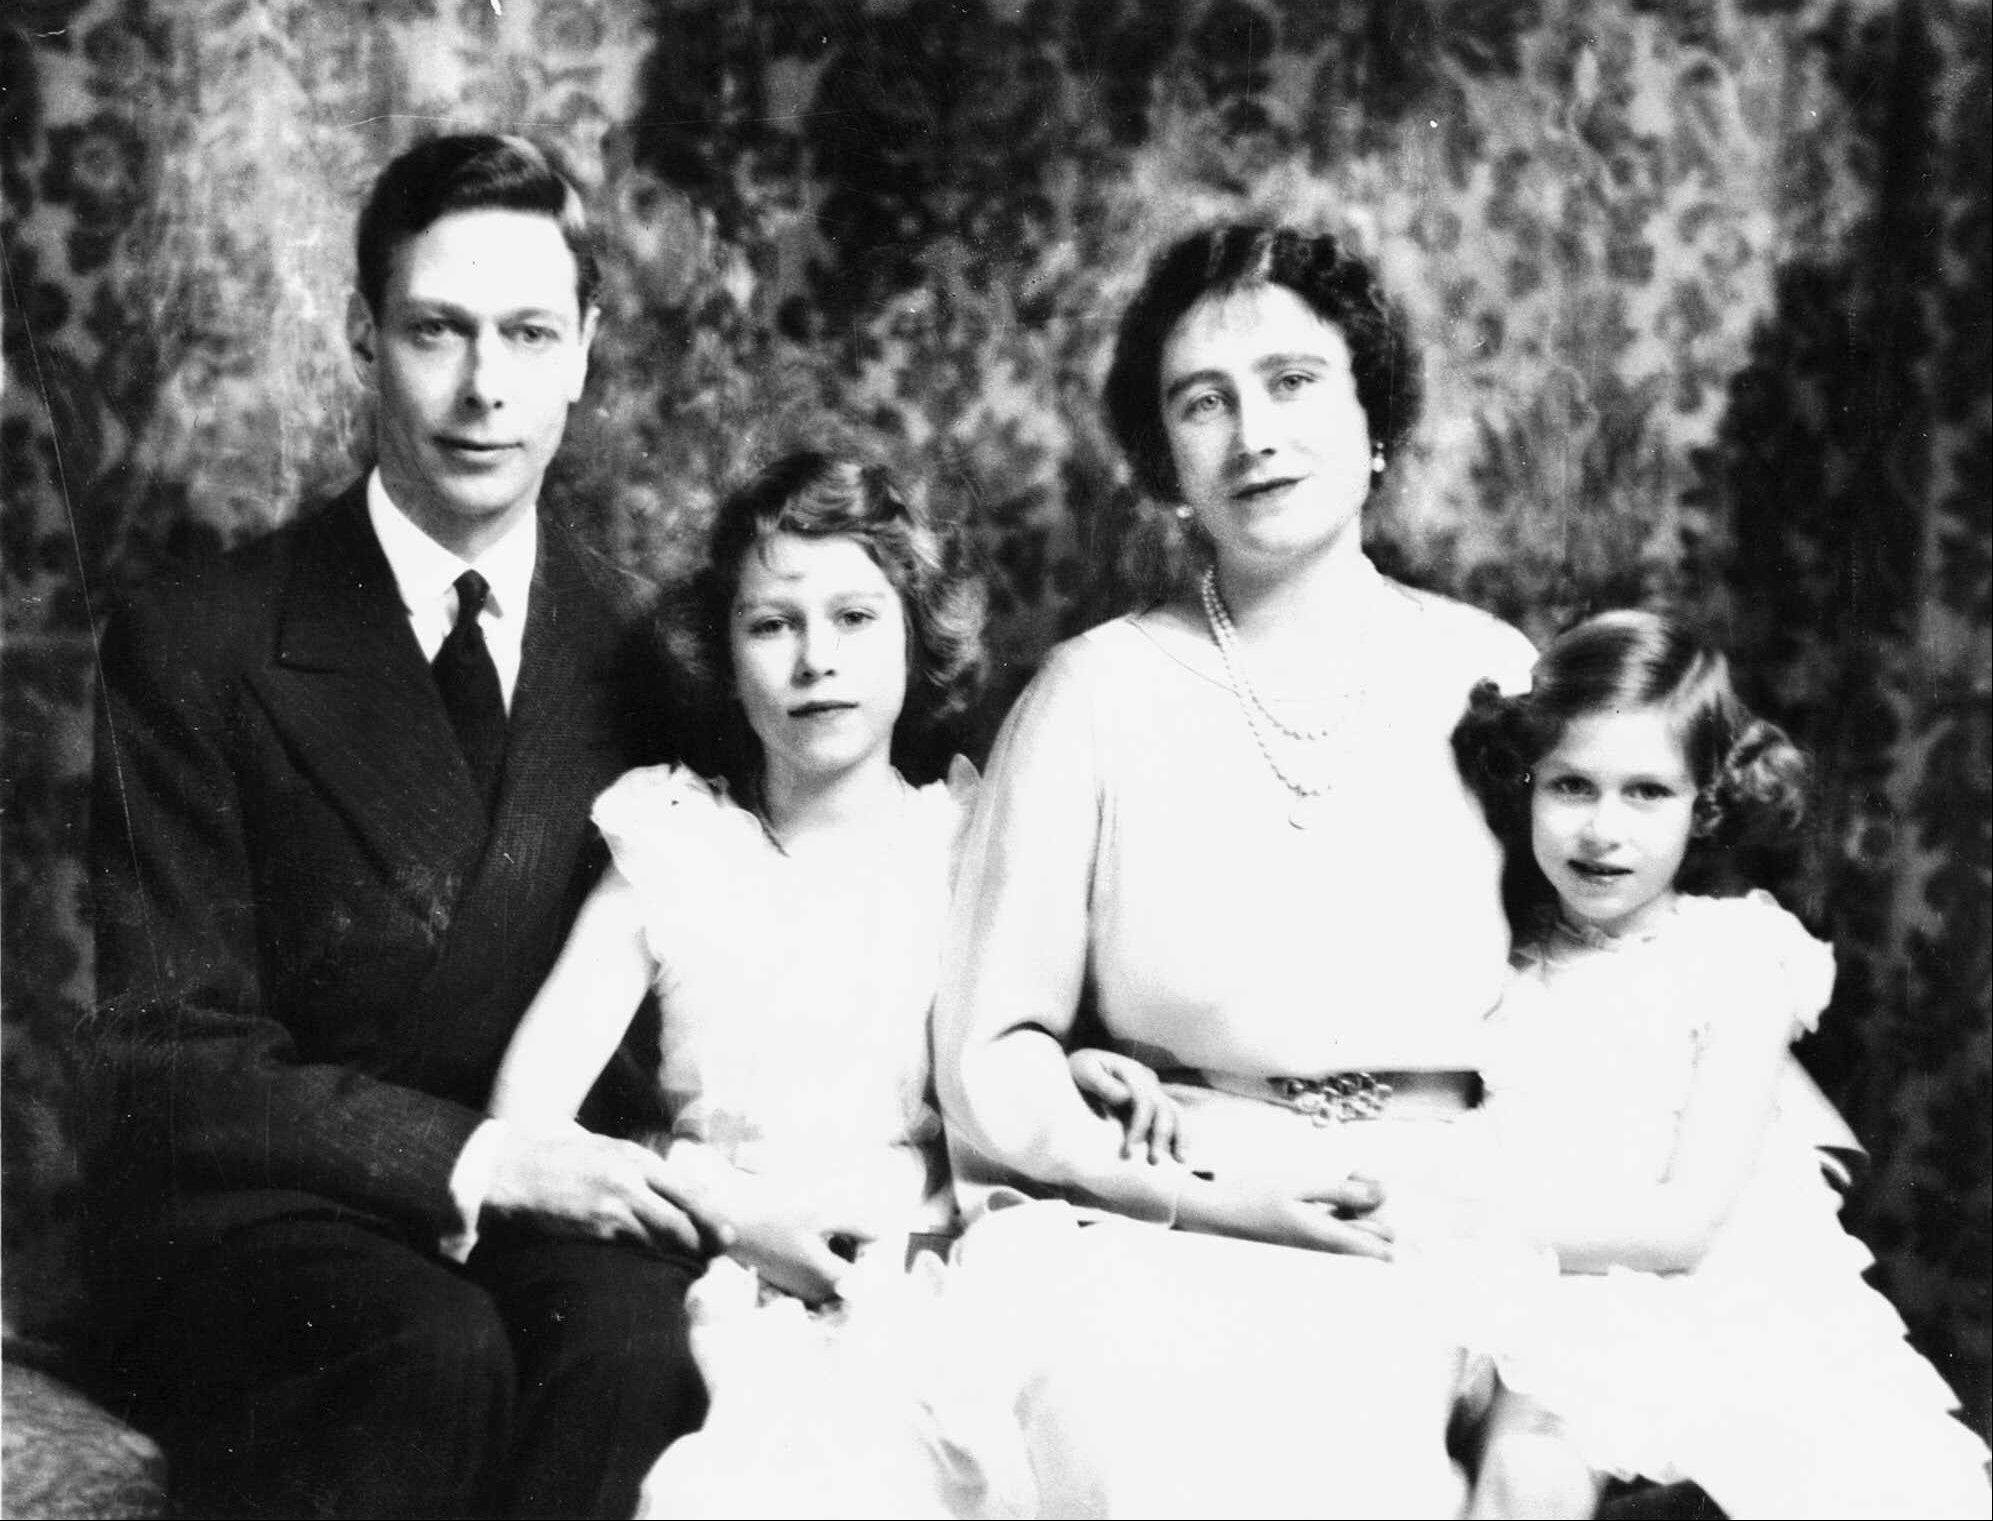 In this 1937 photo, Britain's Queen Elizabeth, the Queen Mother, poses with her husband, King George VI, and their two daughters, Princess Elizabeth, the future Queen Elizabeth II, center, and Princess Margaret.